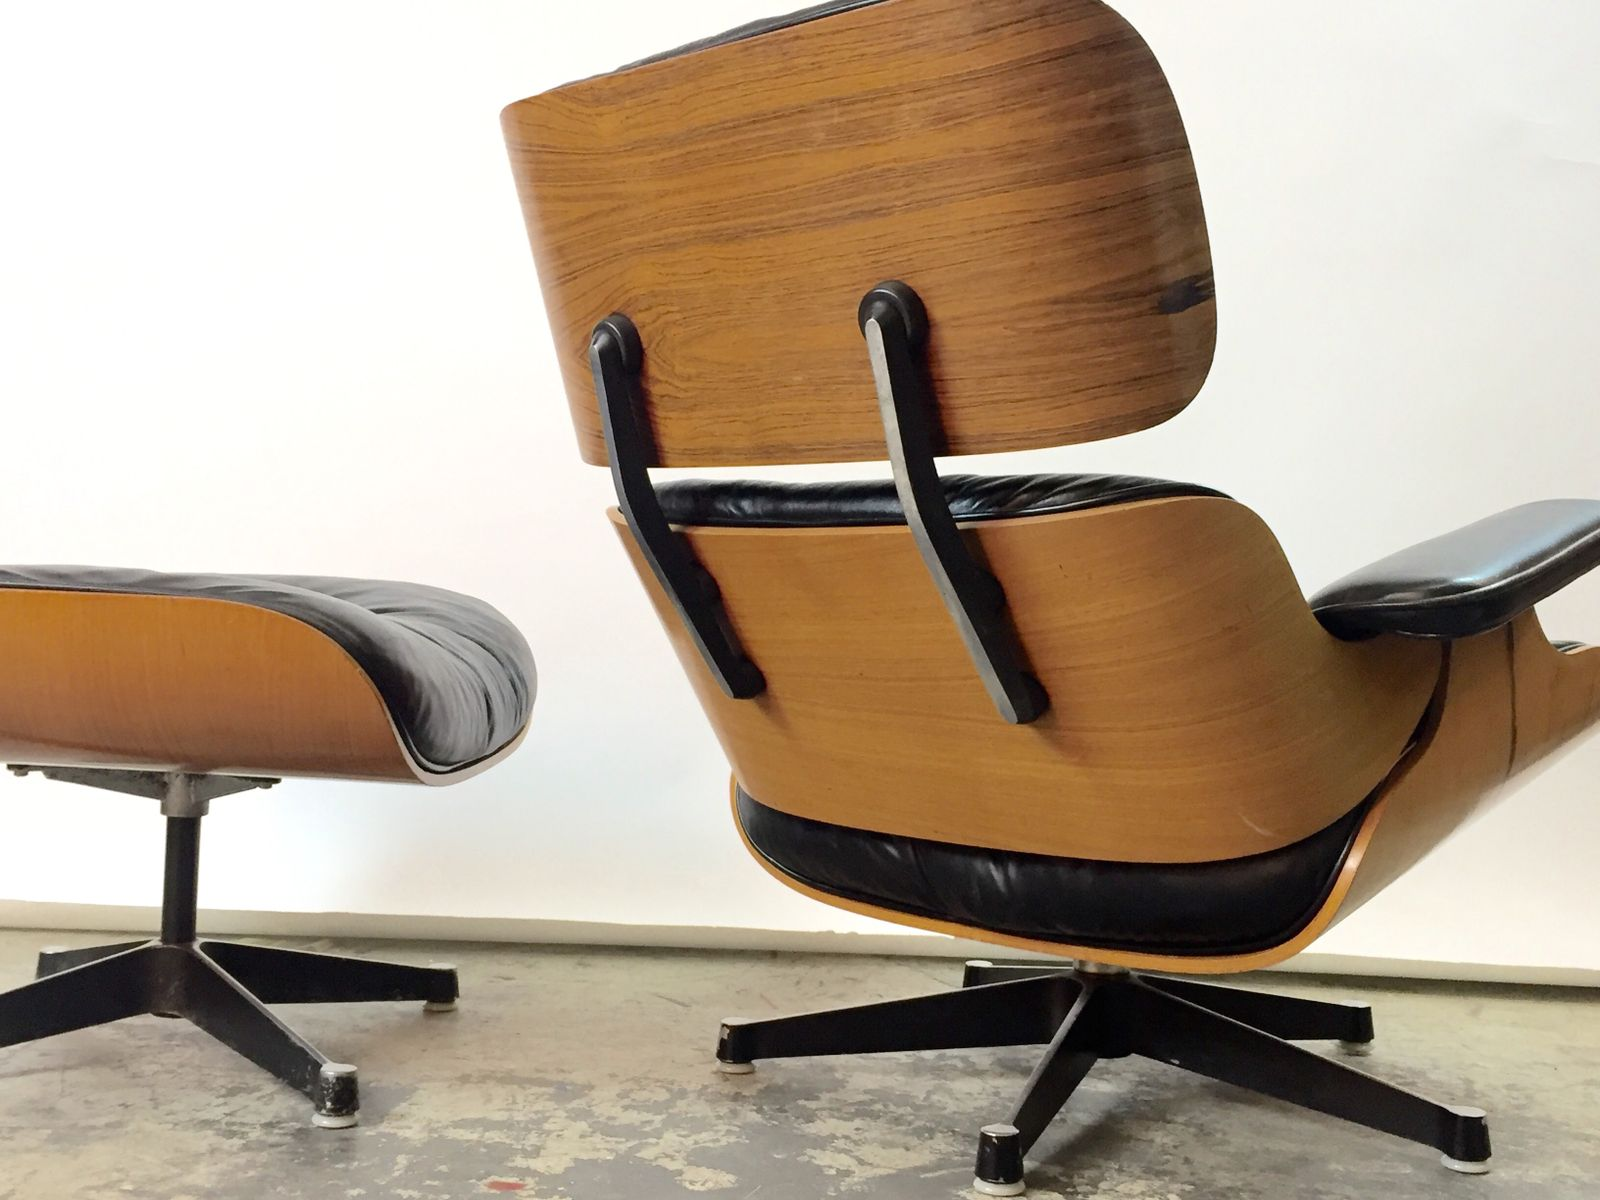 lounge chair ottoman by charles ray eames for vitra 1967 for sale at pamono. Black Bedroom Furniture Sets. Home Design Ideas